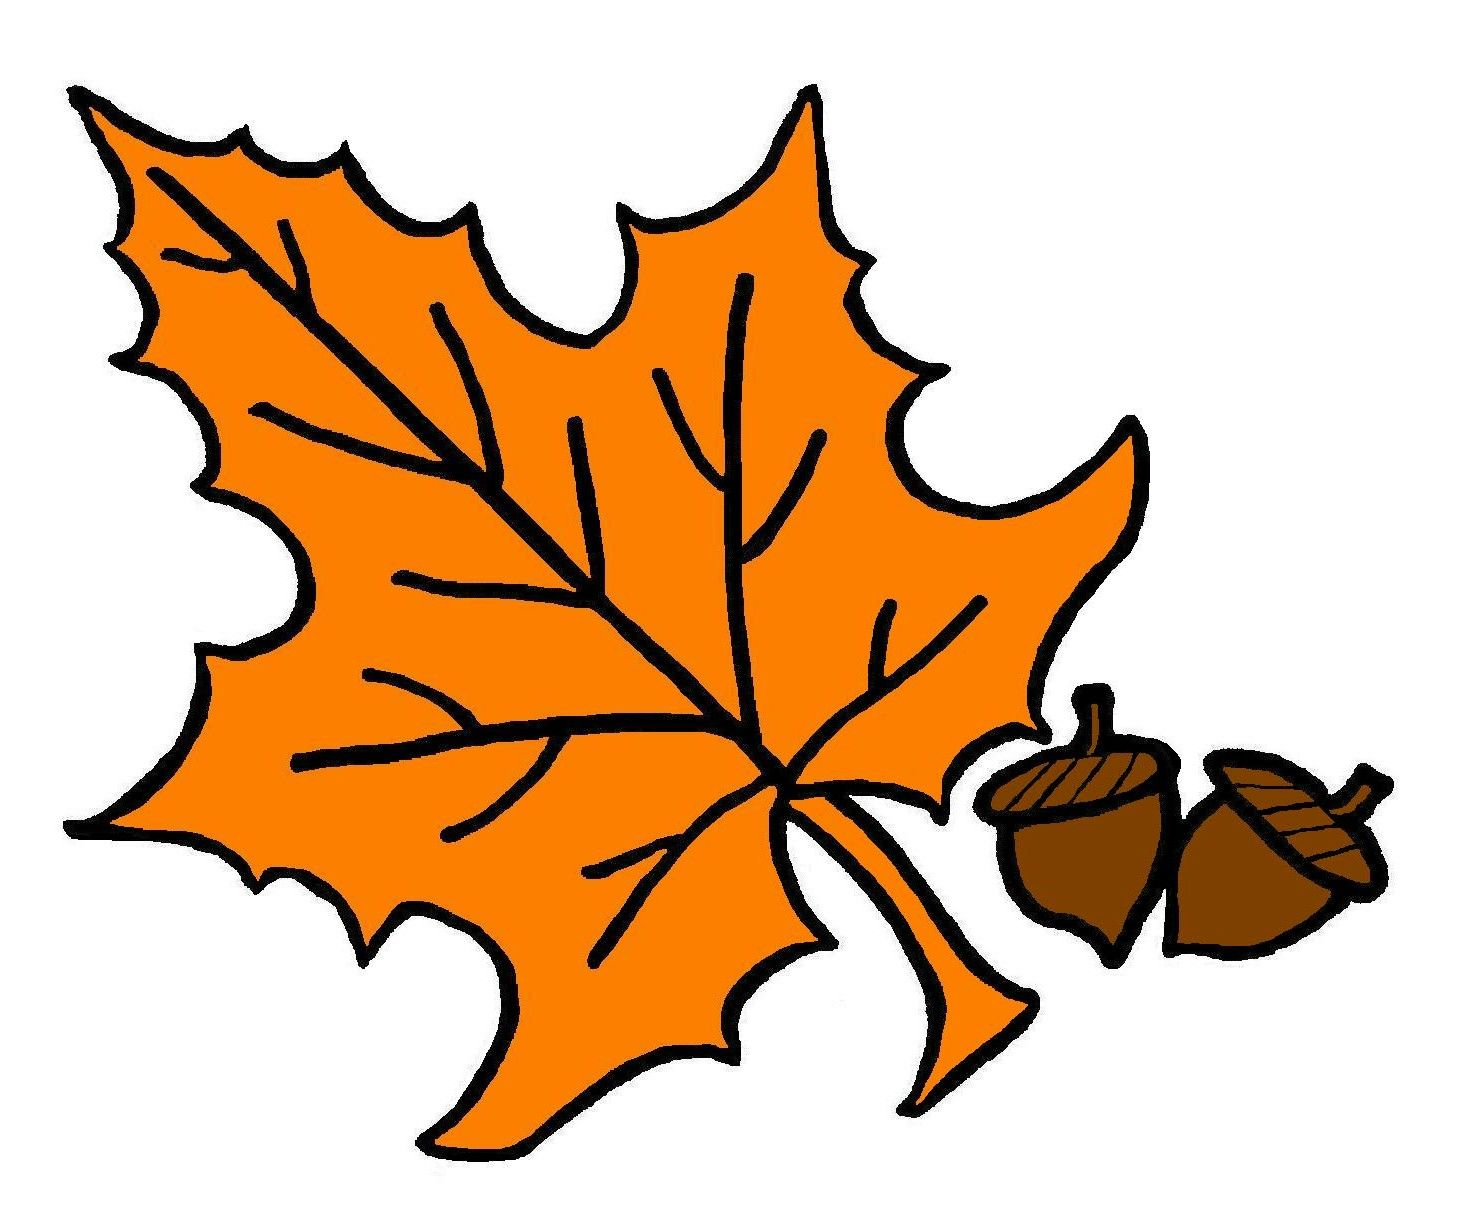 1457x1222 Fall leaves tree with autumn leaves illustrationlor clip art 2